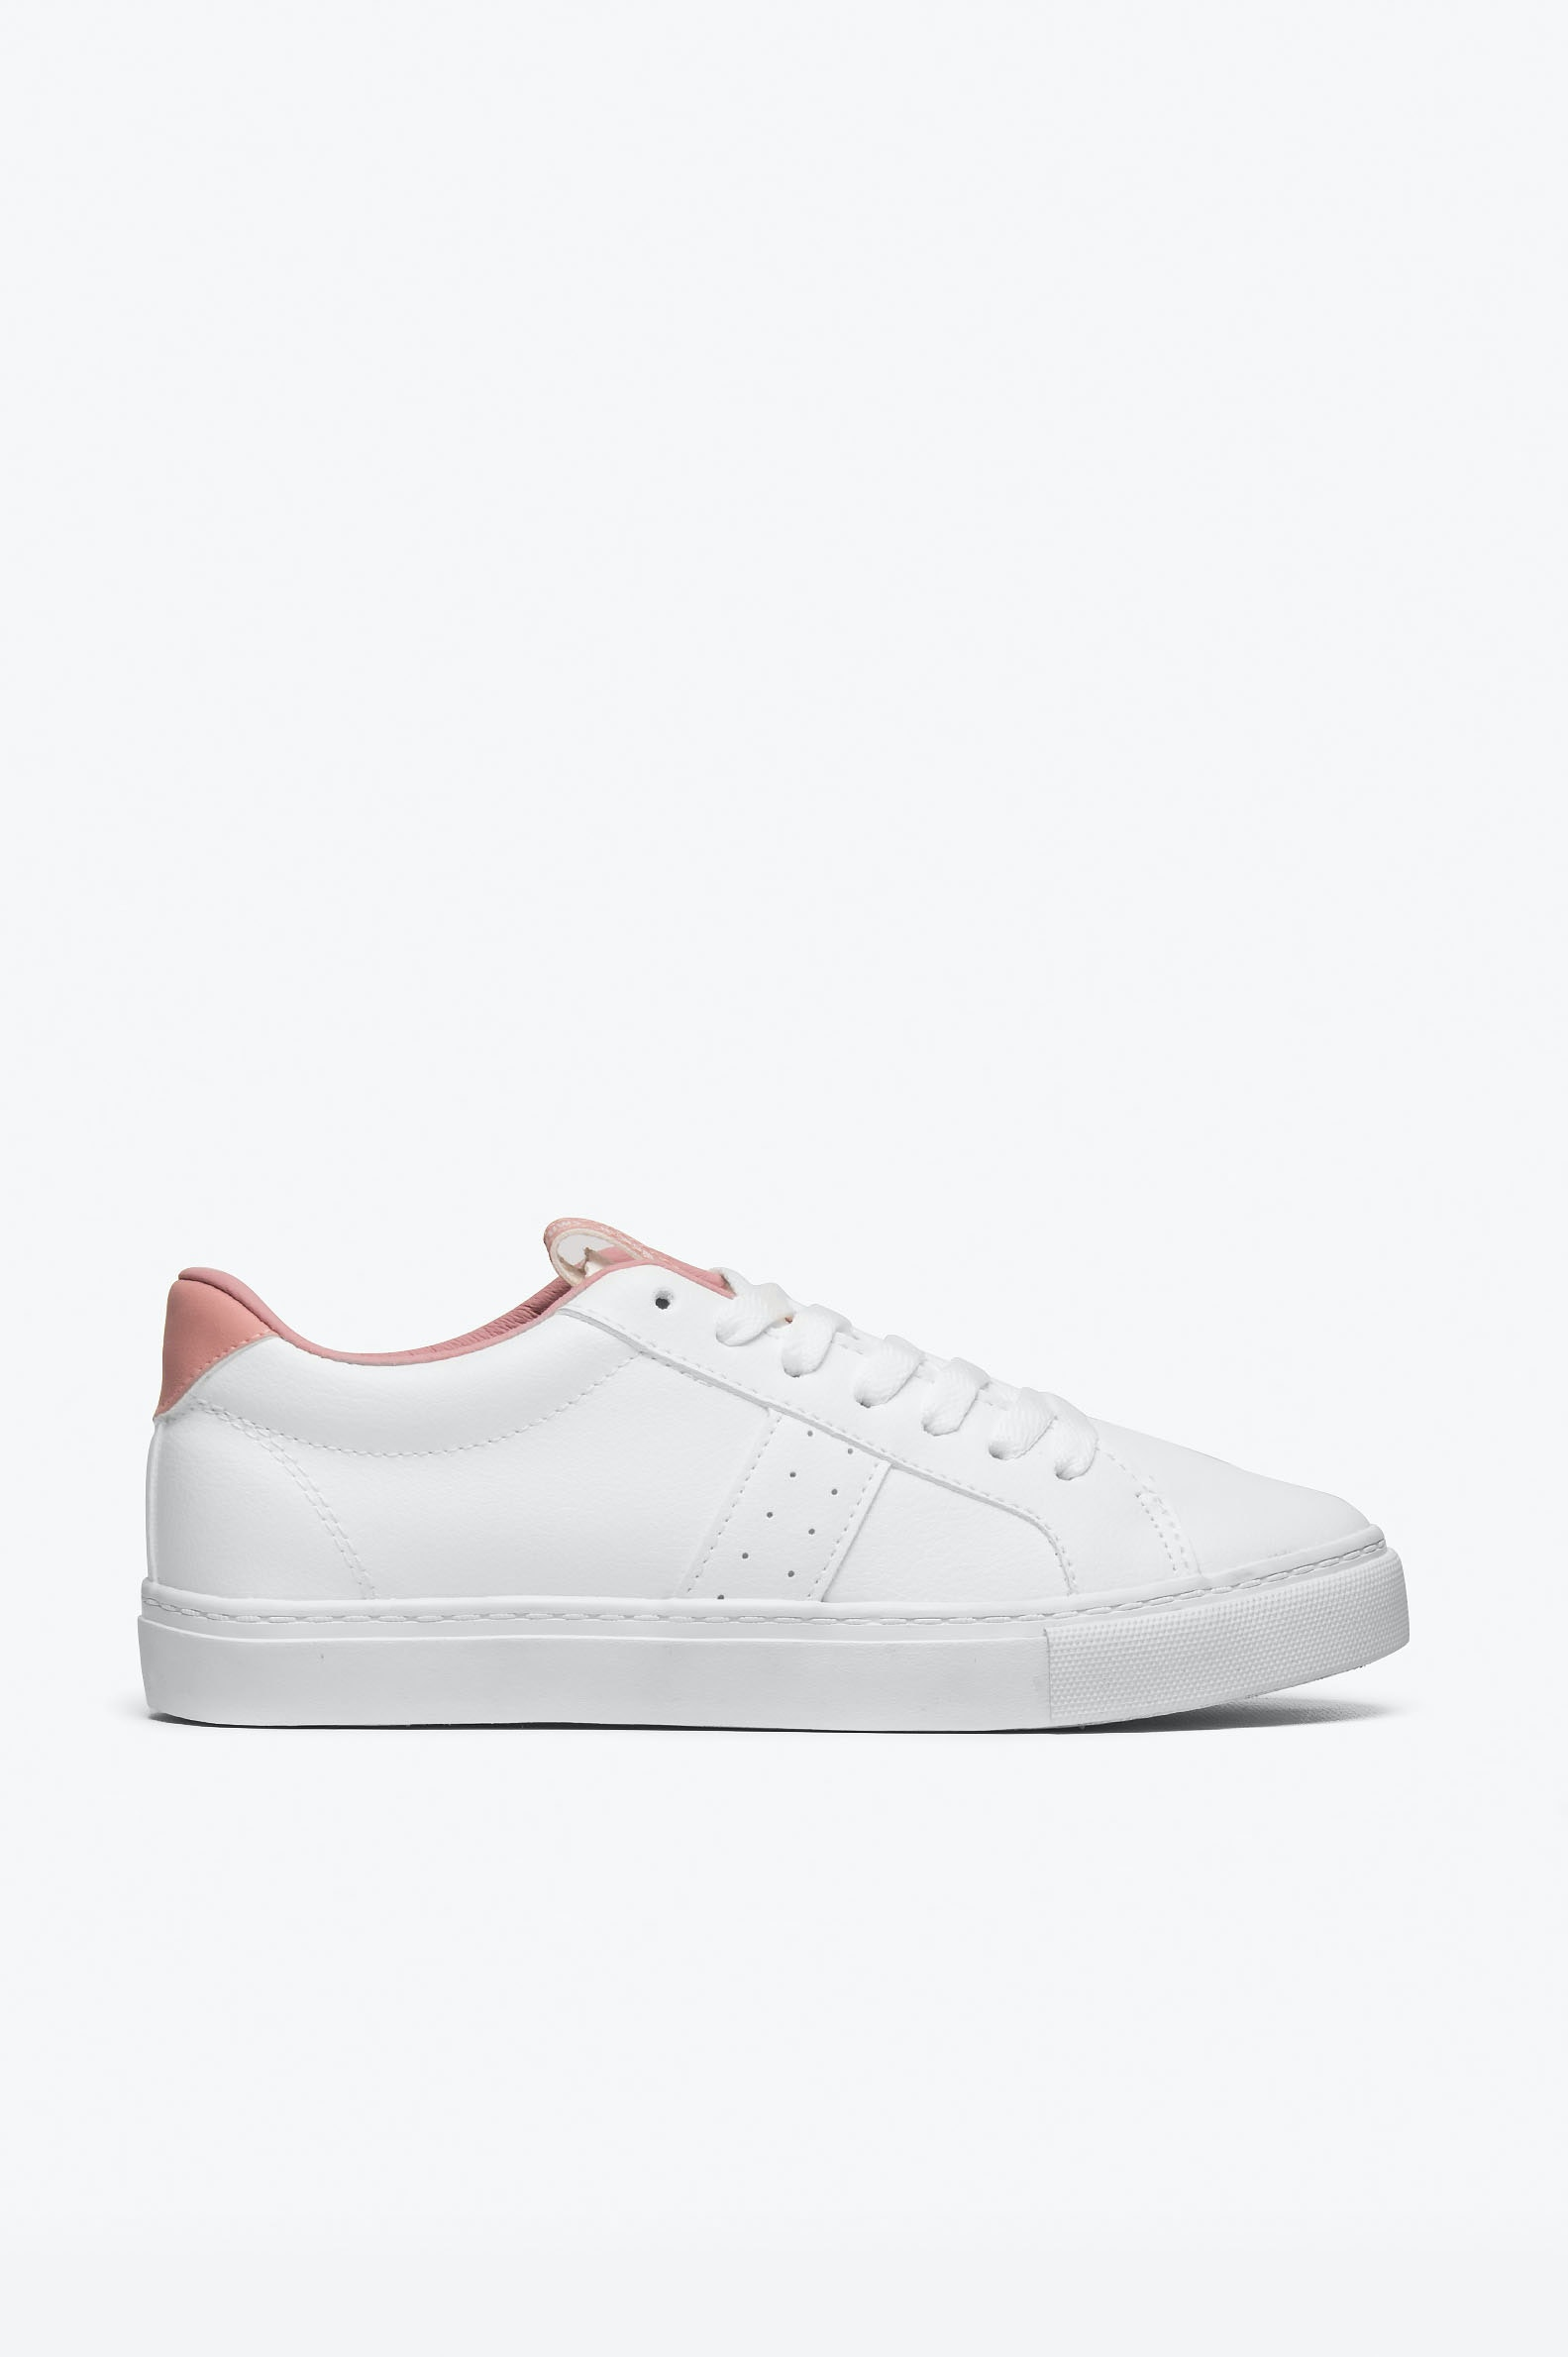 CHAUSSURES FREESTYLE TENTH SMILE MAKE UP FEMME